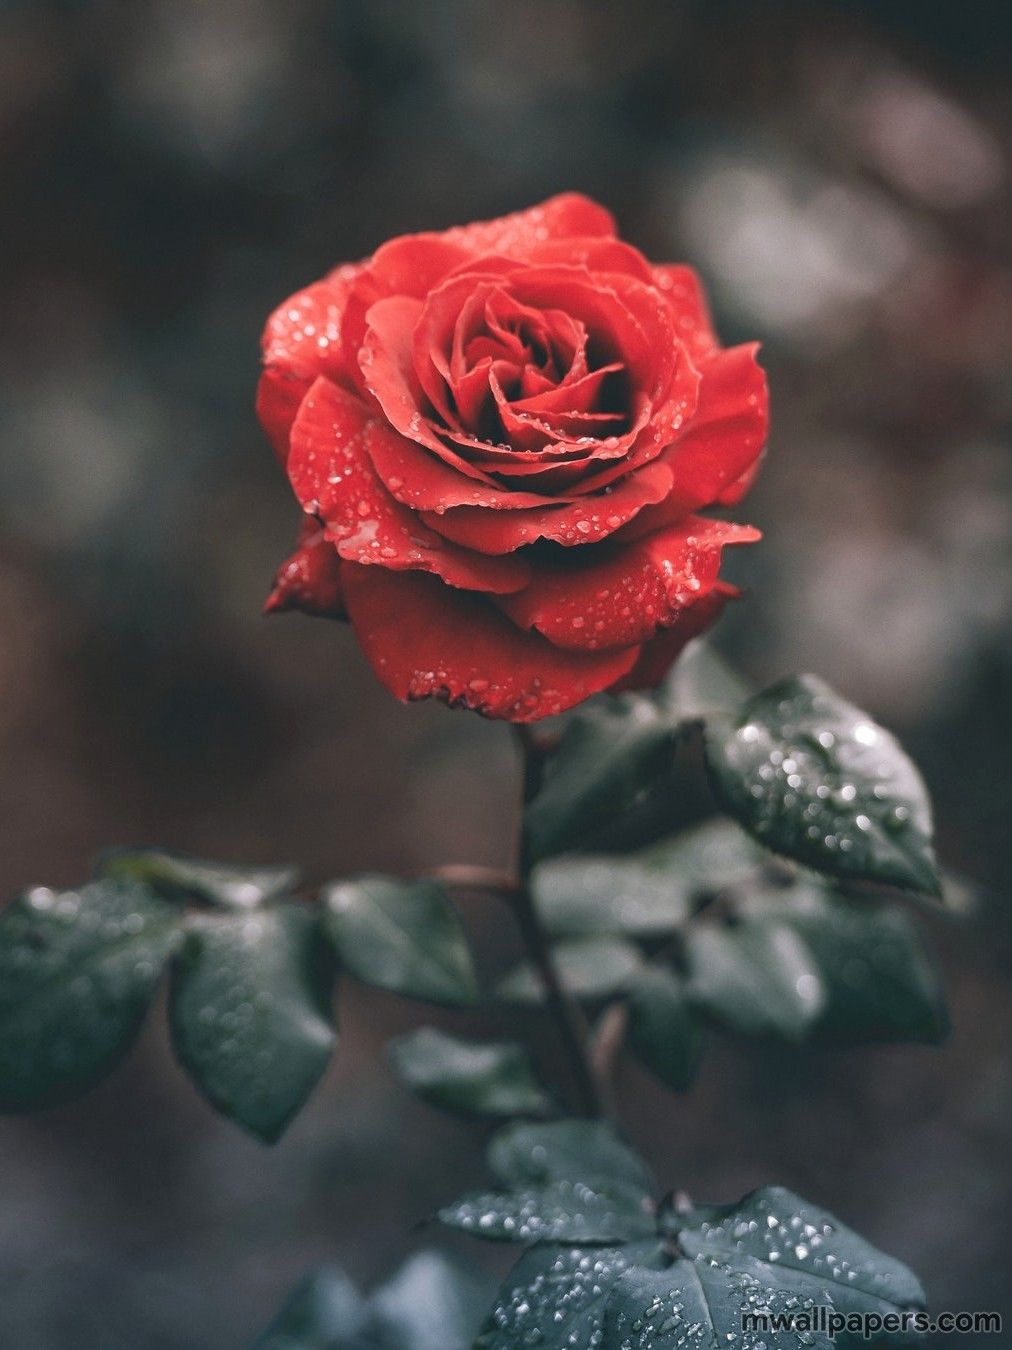 Red Rose Images Hd Wallpapers Photos Pictures Love Wallpaper 1080p Rose Flower Photos Love Rose Flower Love Rose Images